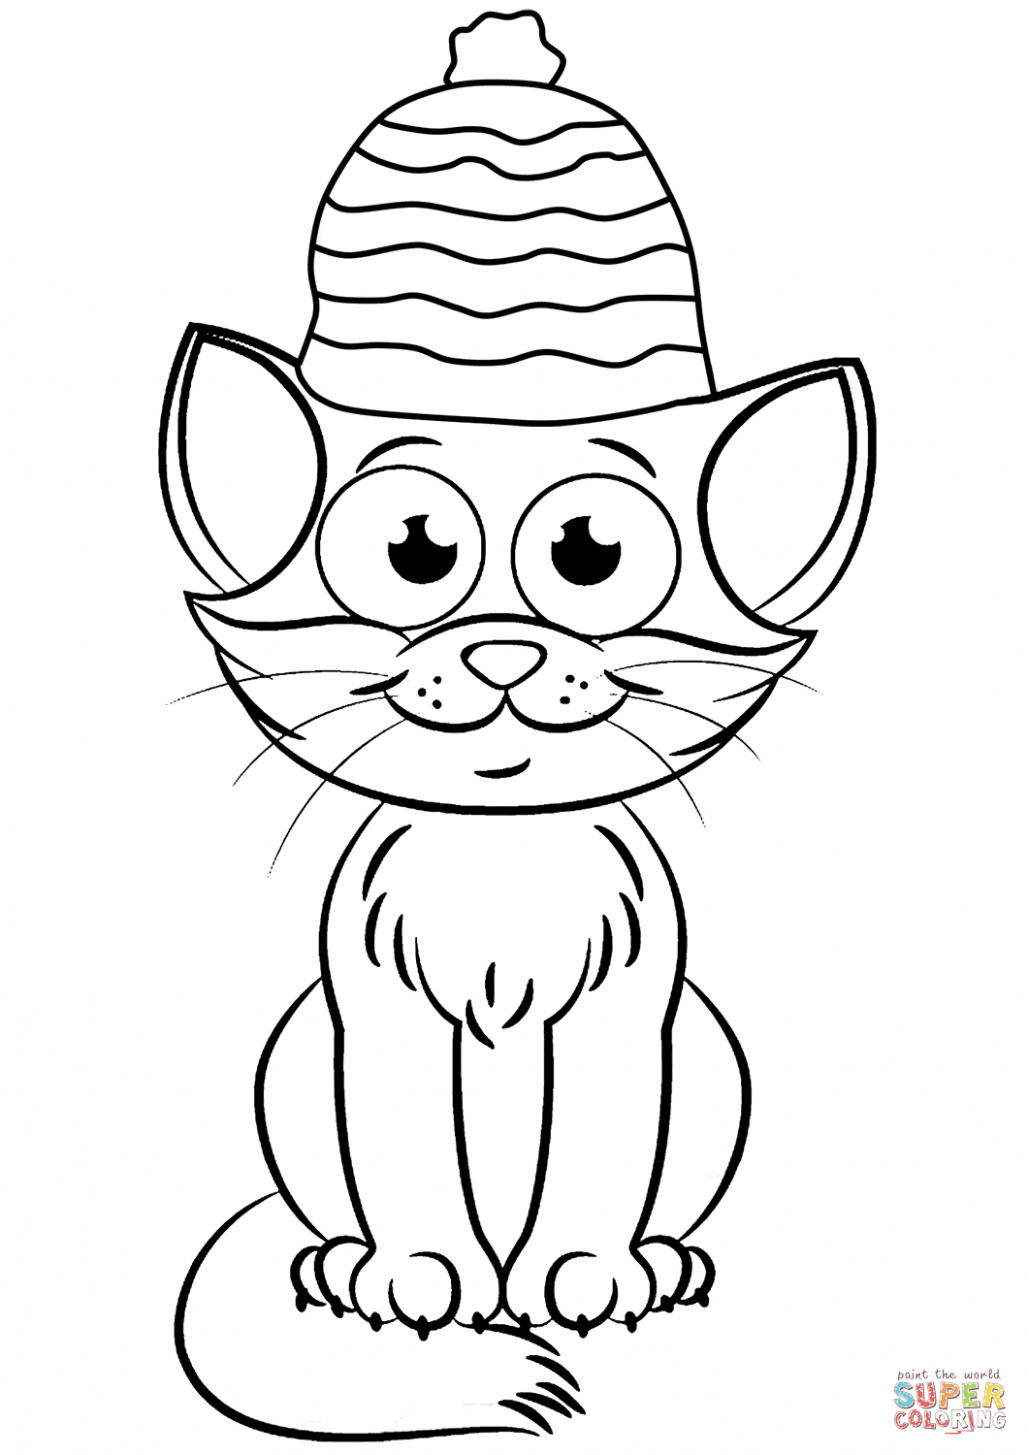 Christmas Cat coloring page | Free Printable Coloring Pages - Christmas Cat Coloring Pages